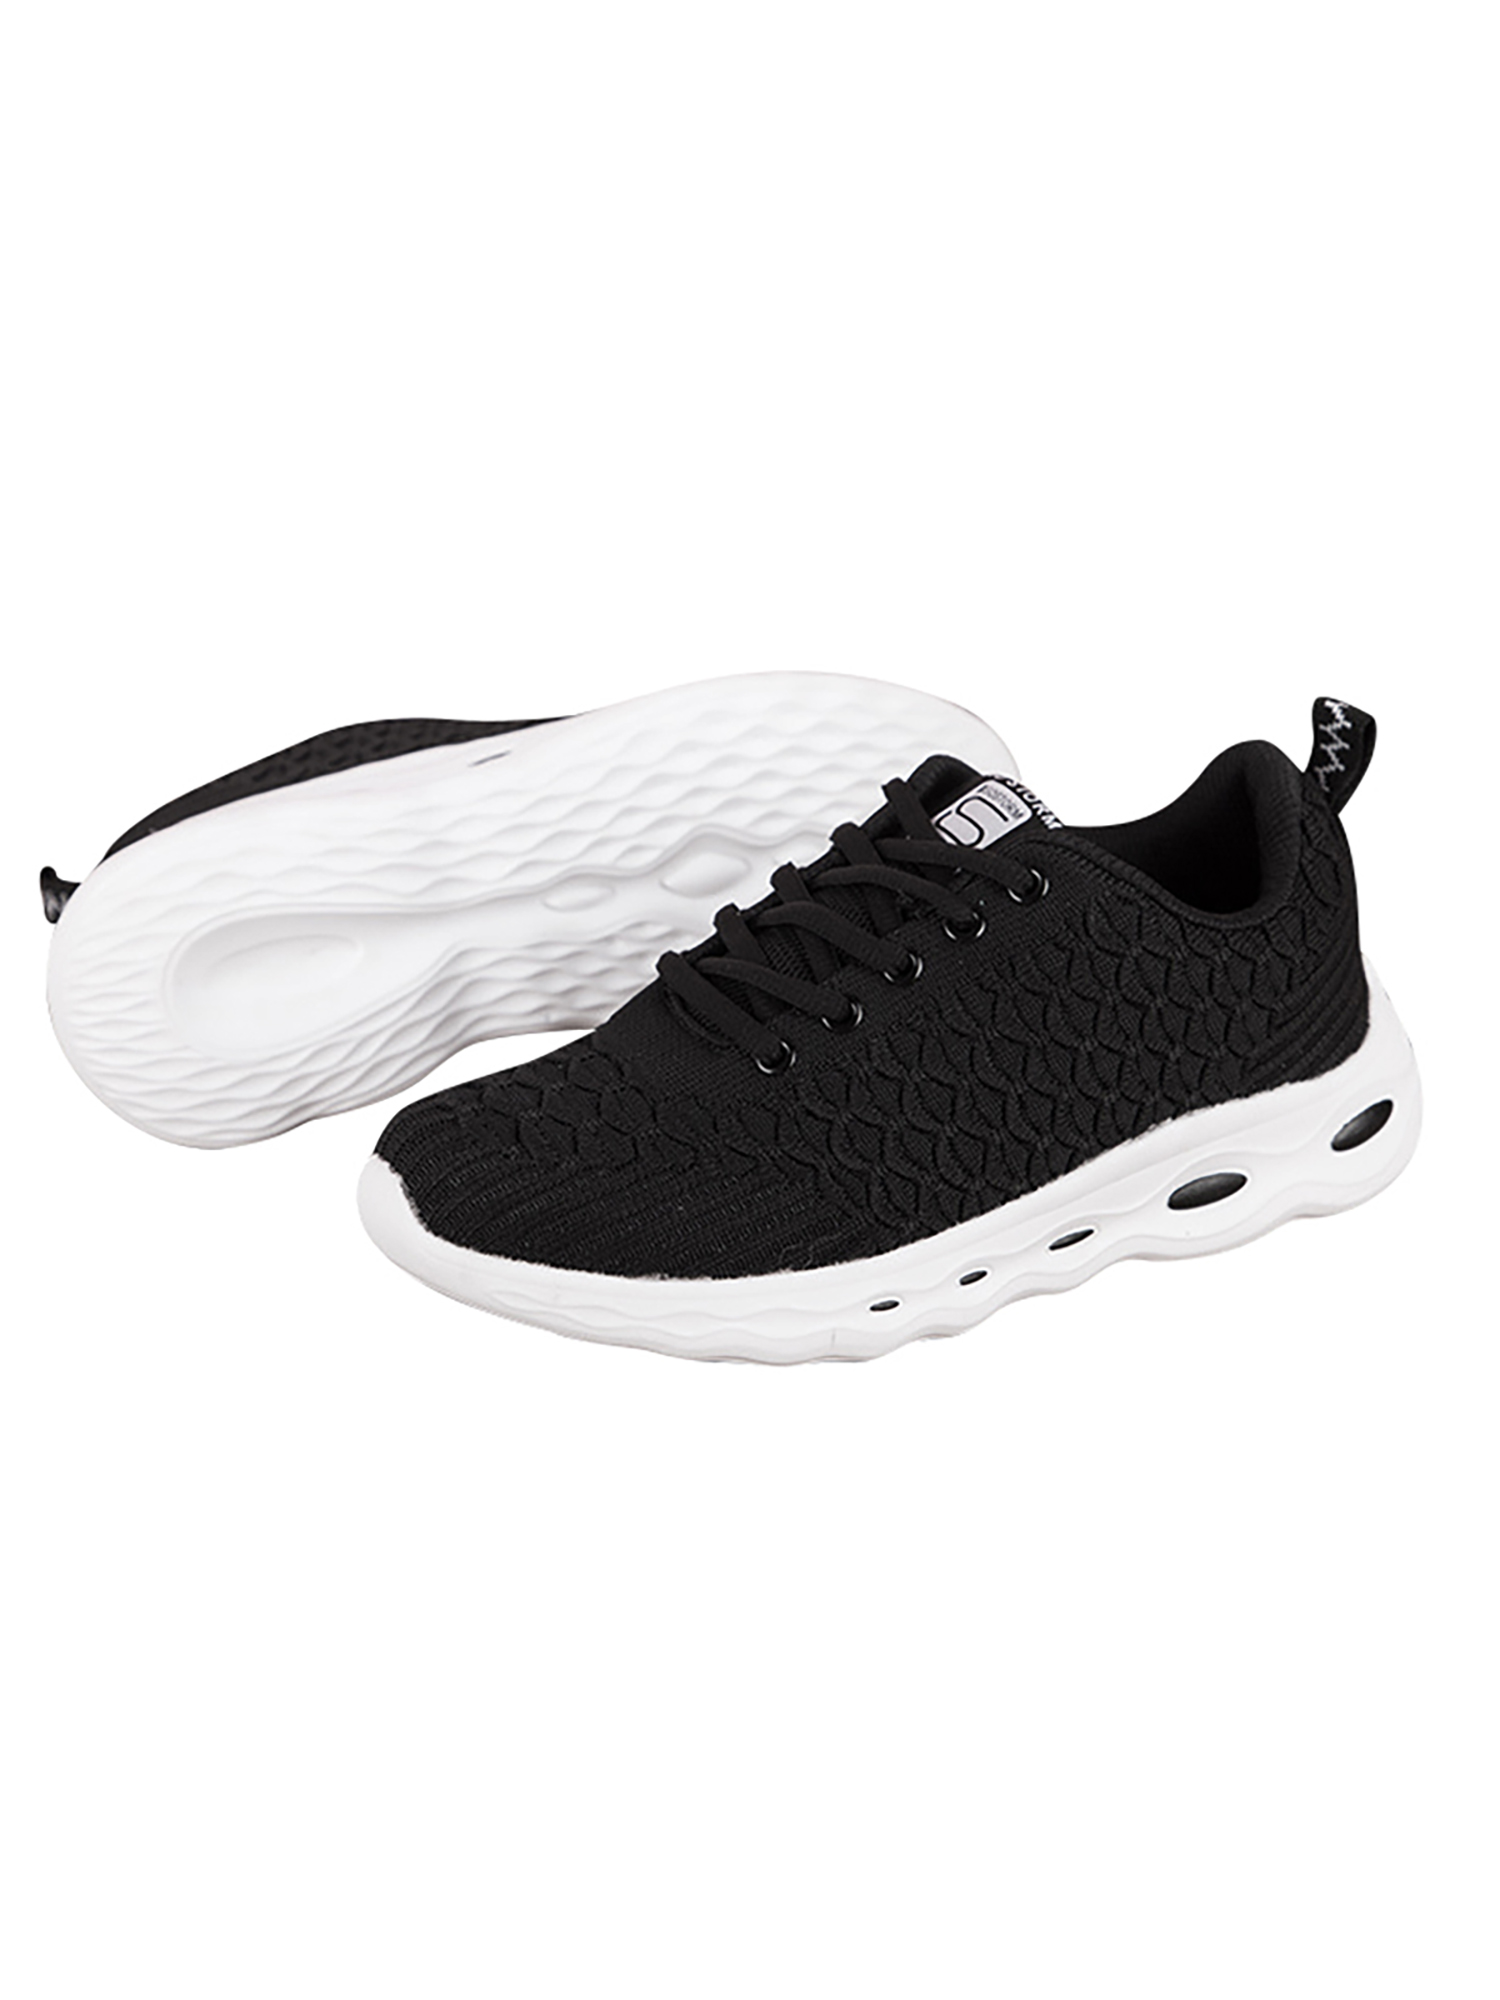 Details about  /Women/'s Breathable Sneakers Walking Trainers Sports Running Tennis Mesh Shoes US